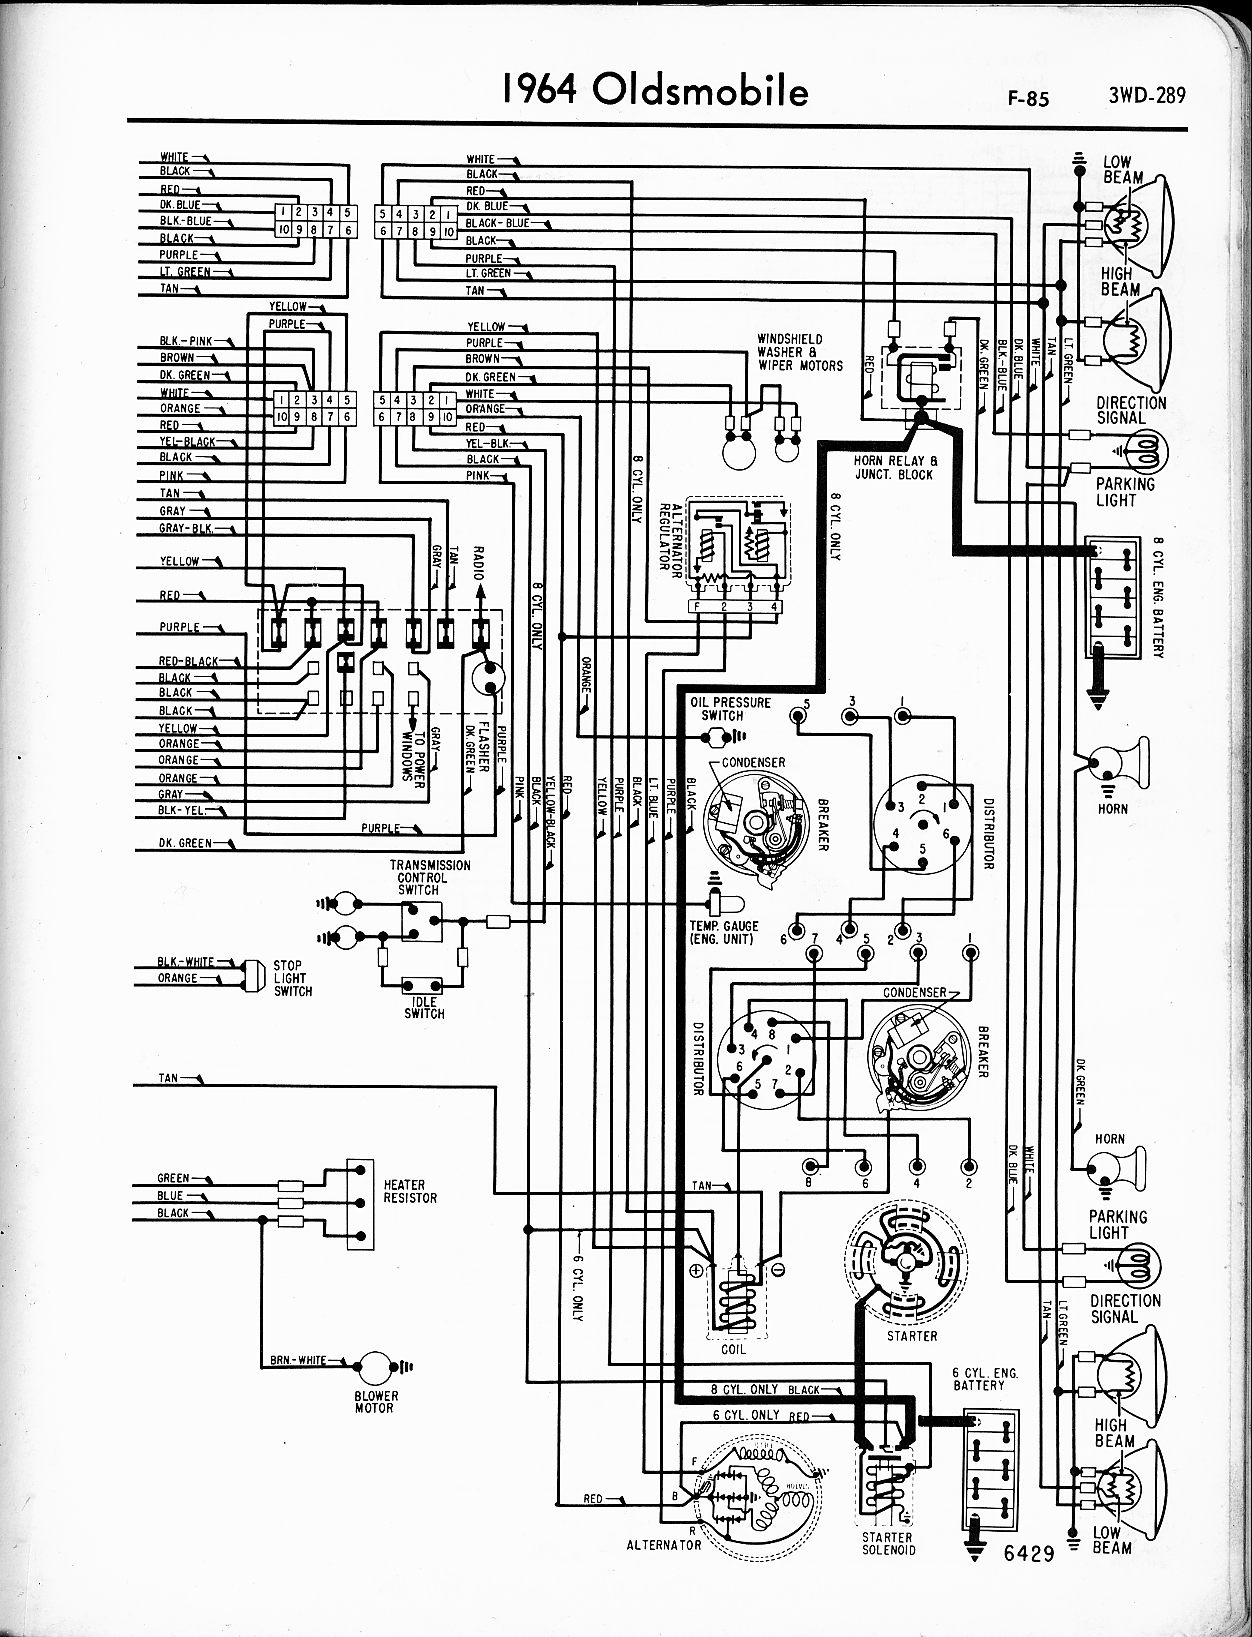 1988 oldsmobile wiring diagram schematic wiring diagram rh 12 fomly be